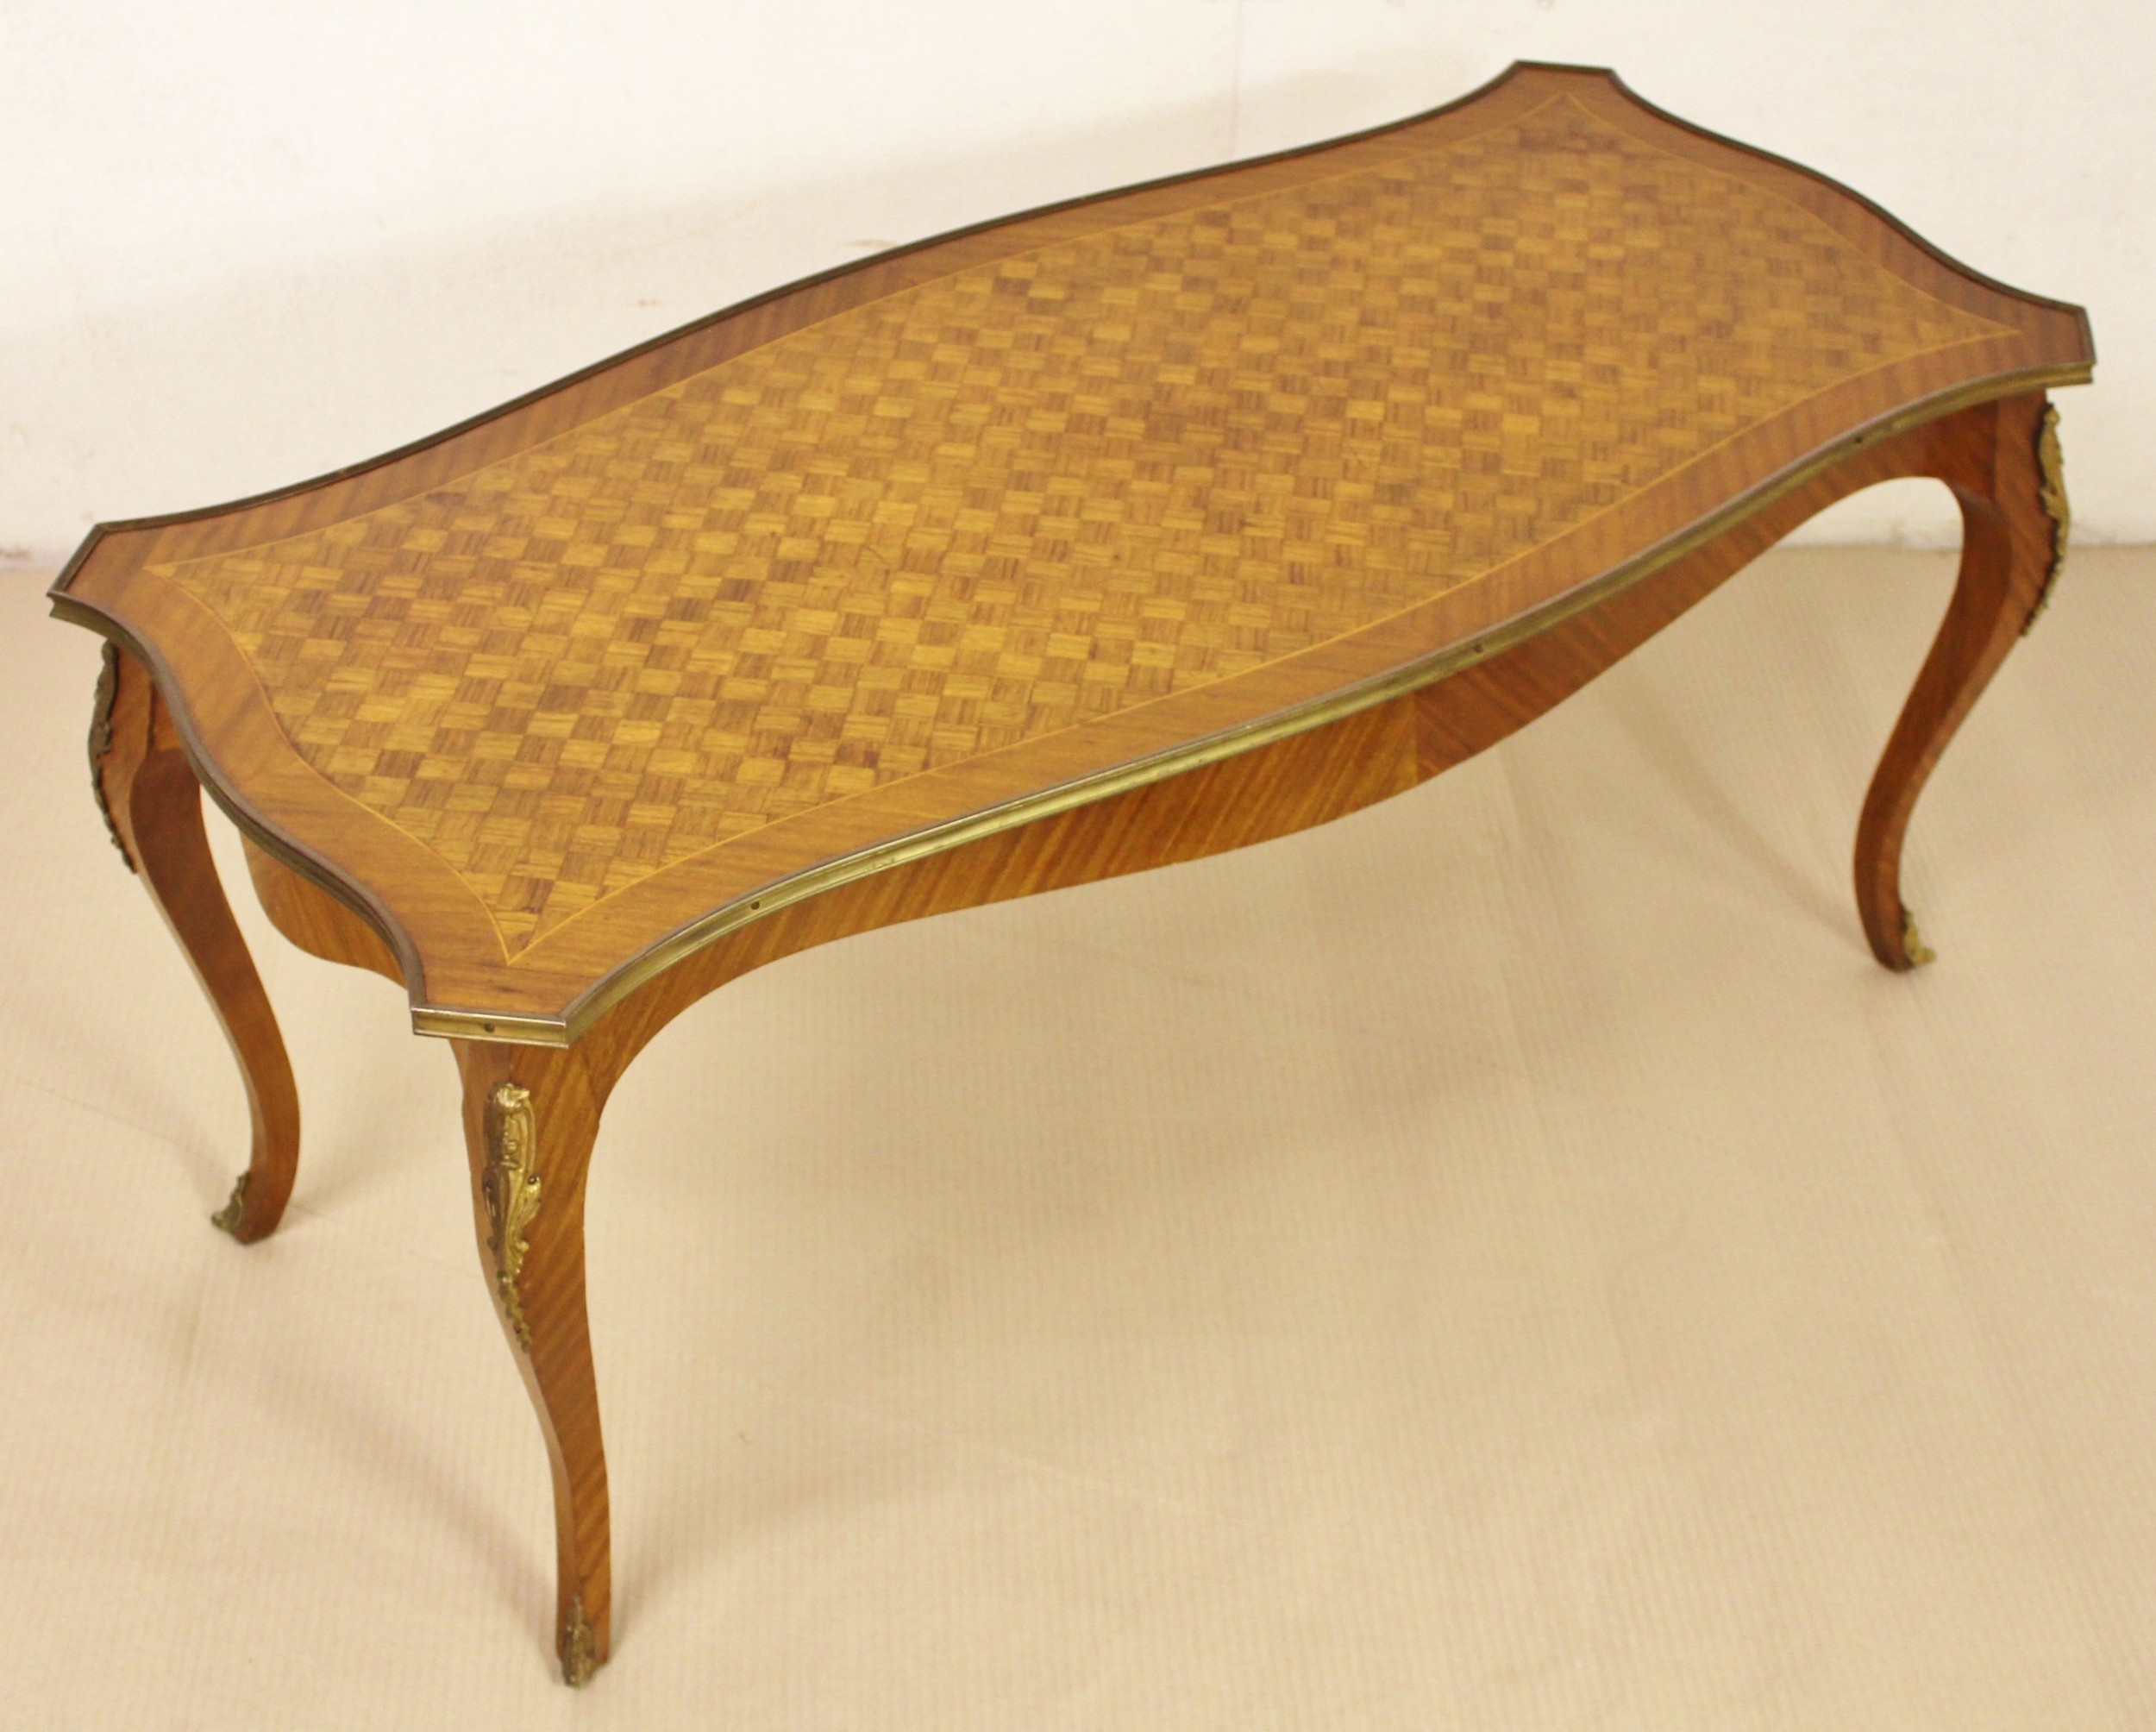 French Kingwood Parquetry Coffee Table